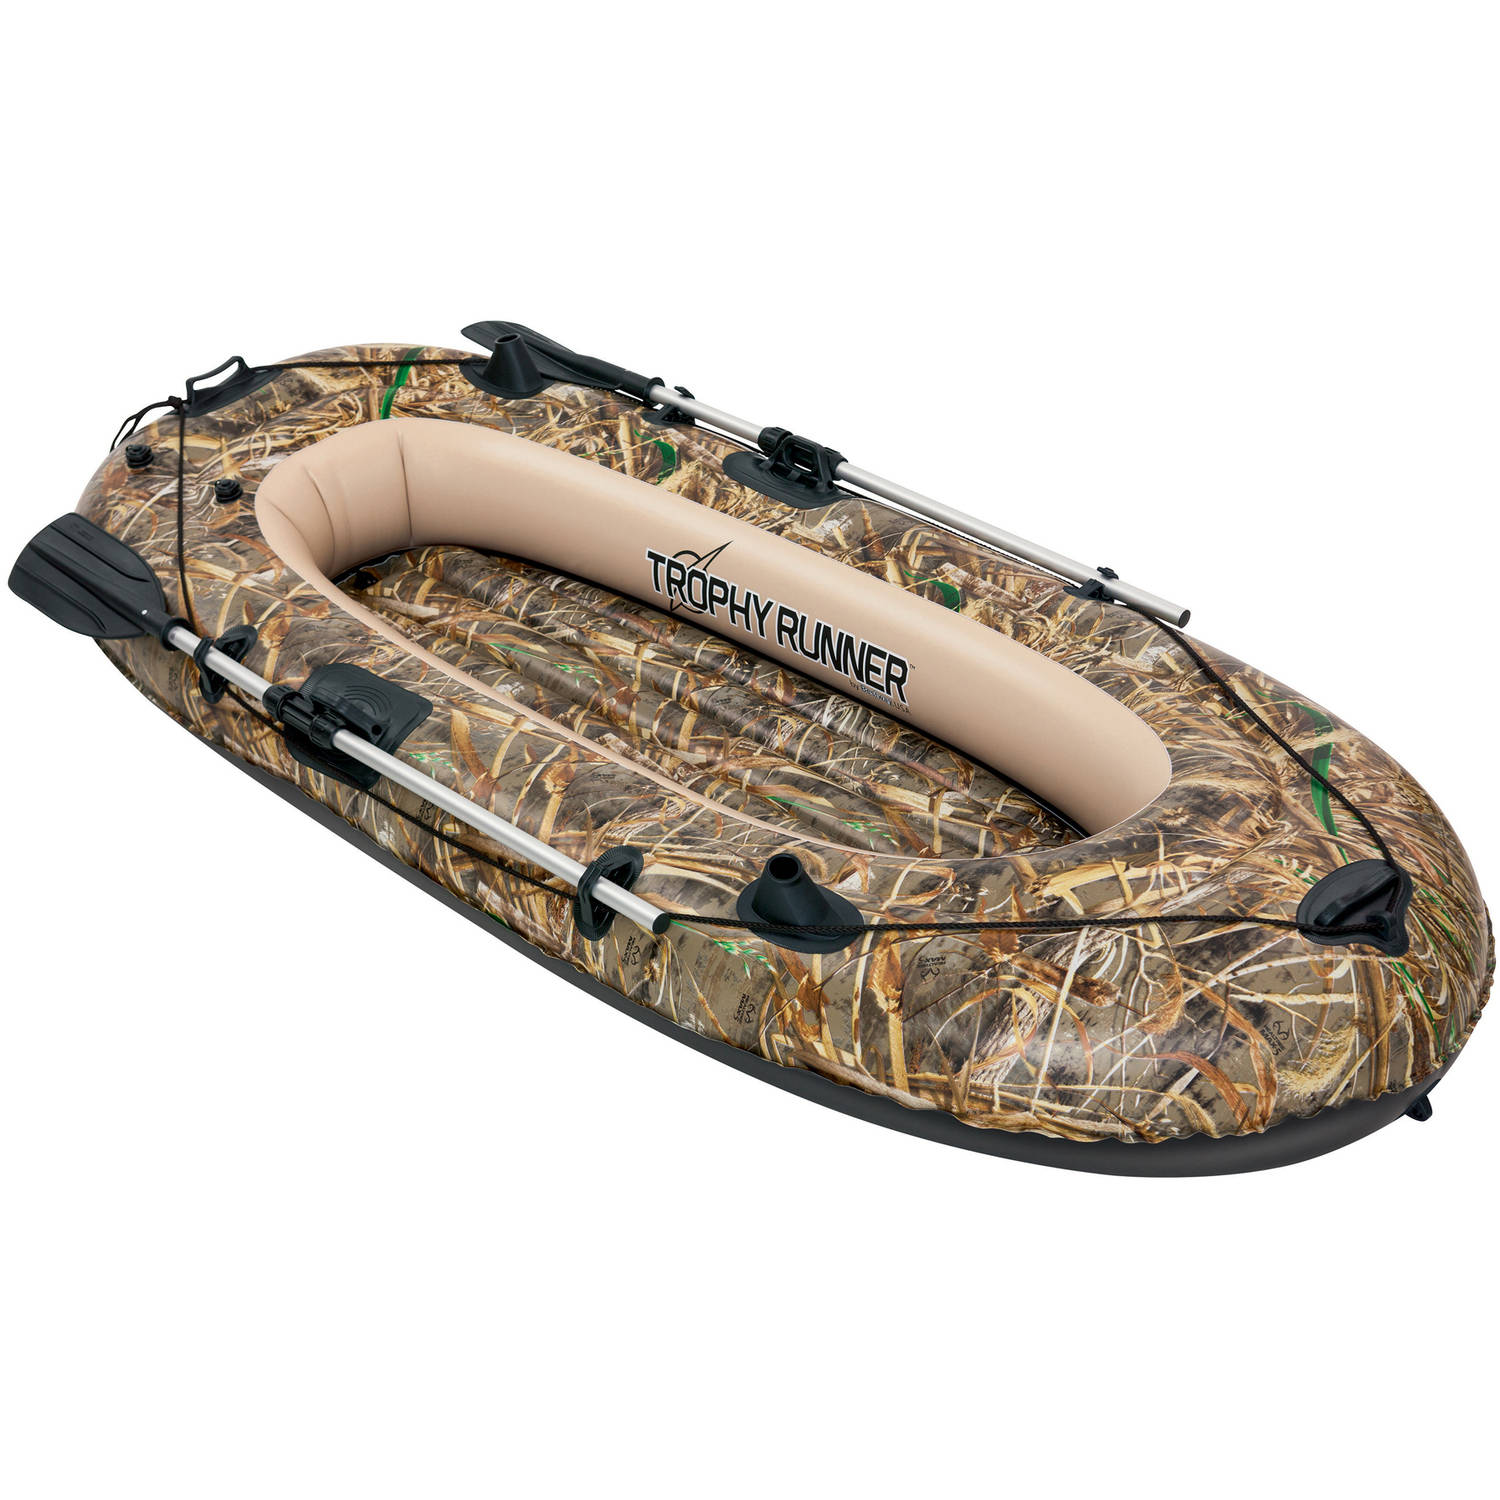 "Bestway Real Tree Trophy Runner Boat, 96"" x 40"""